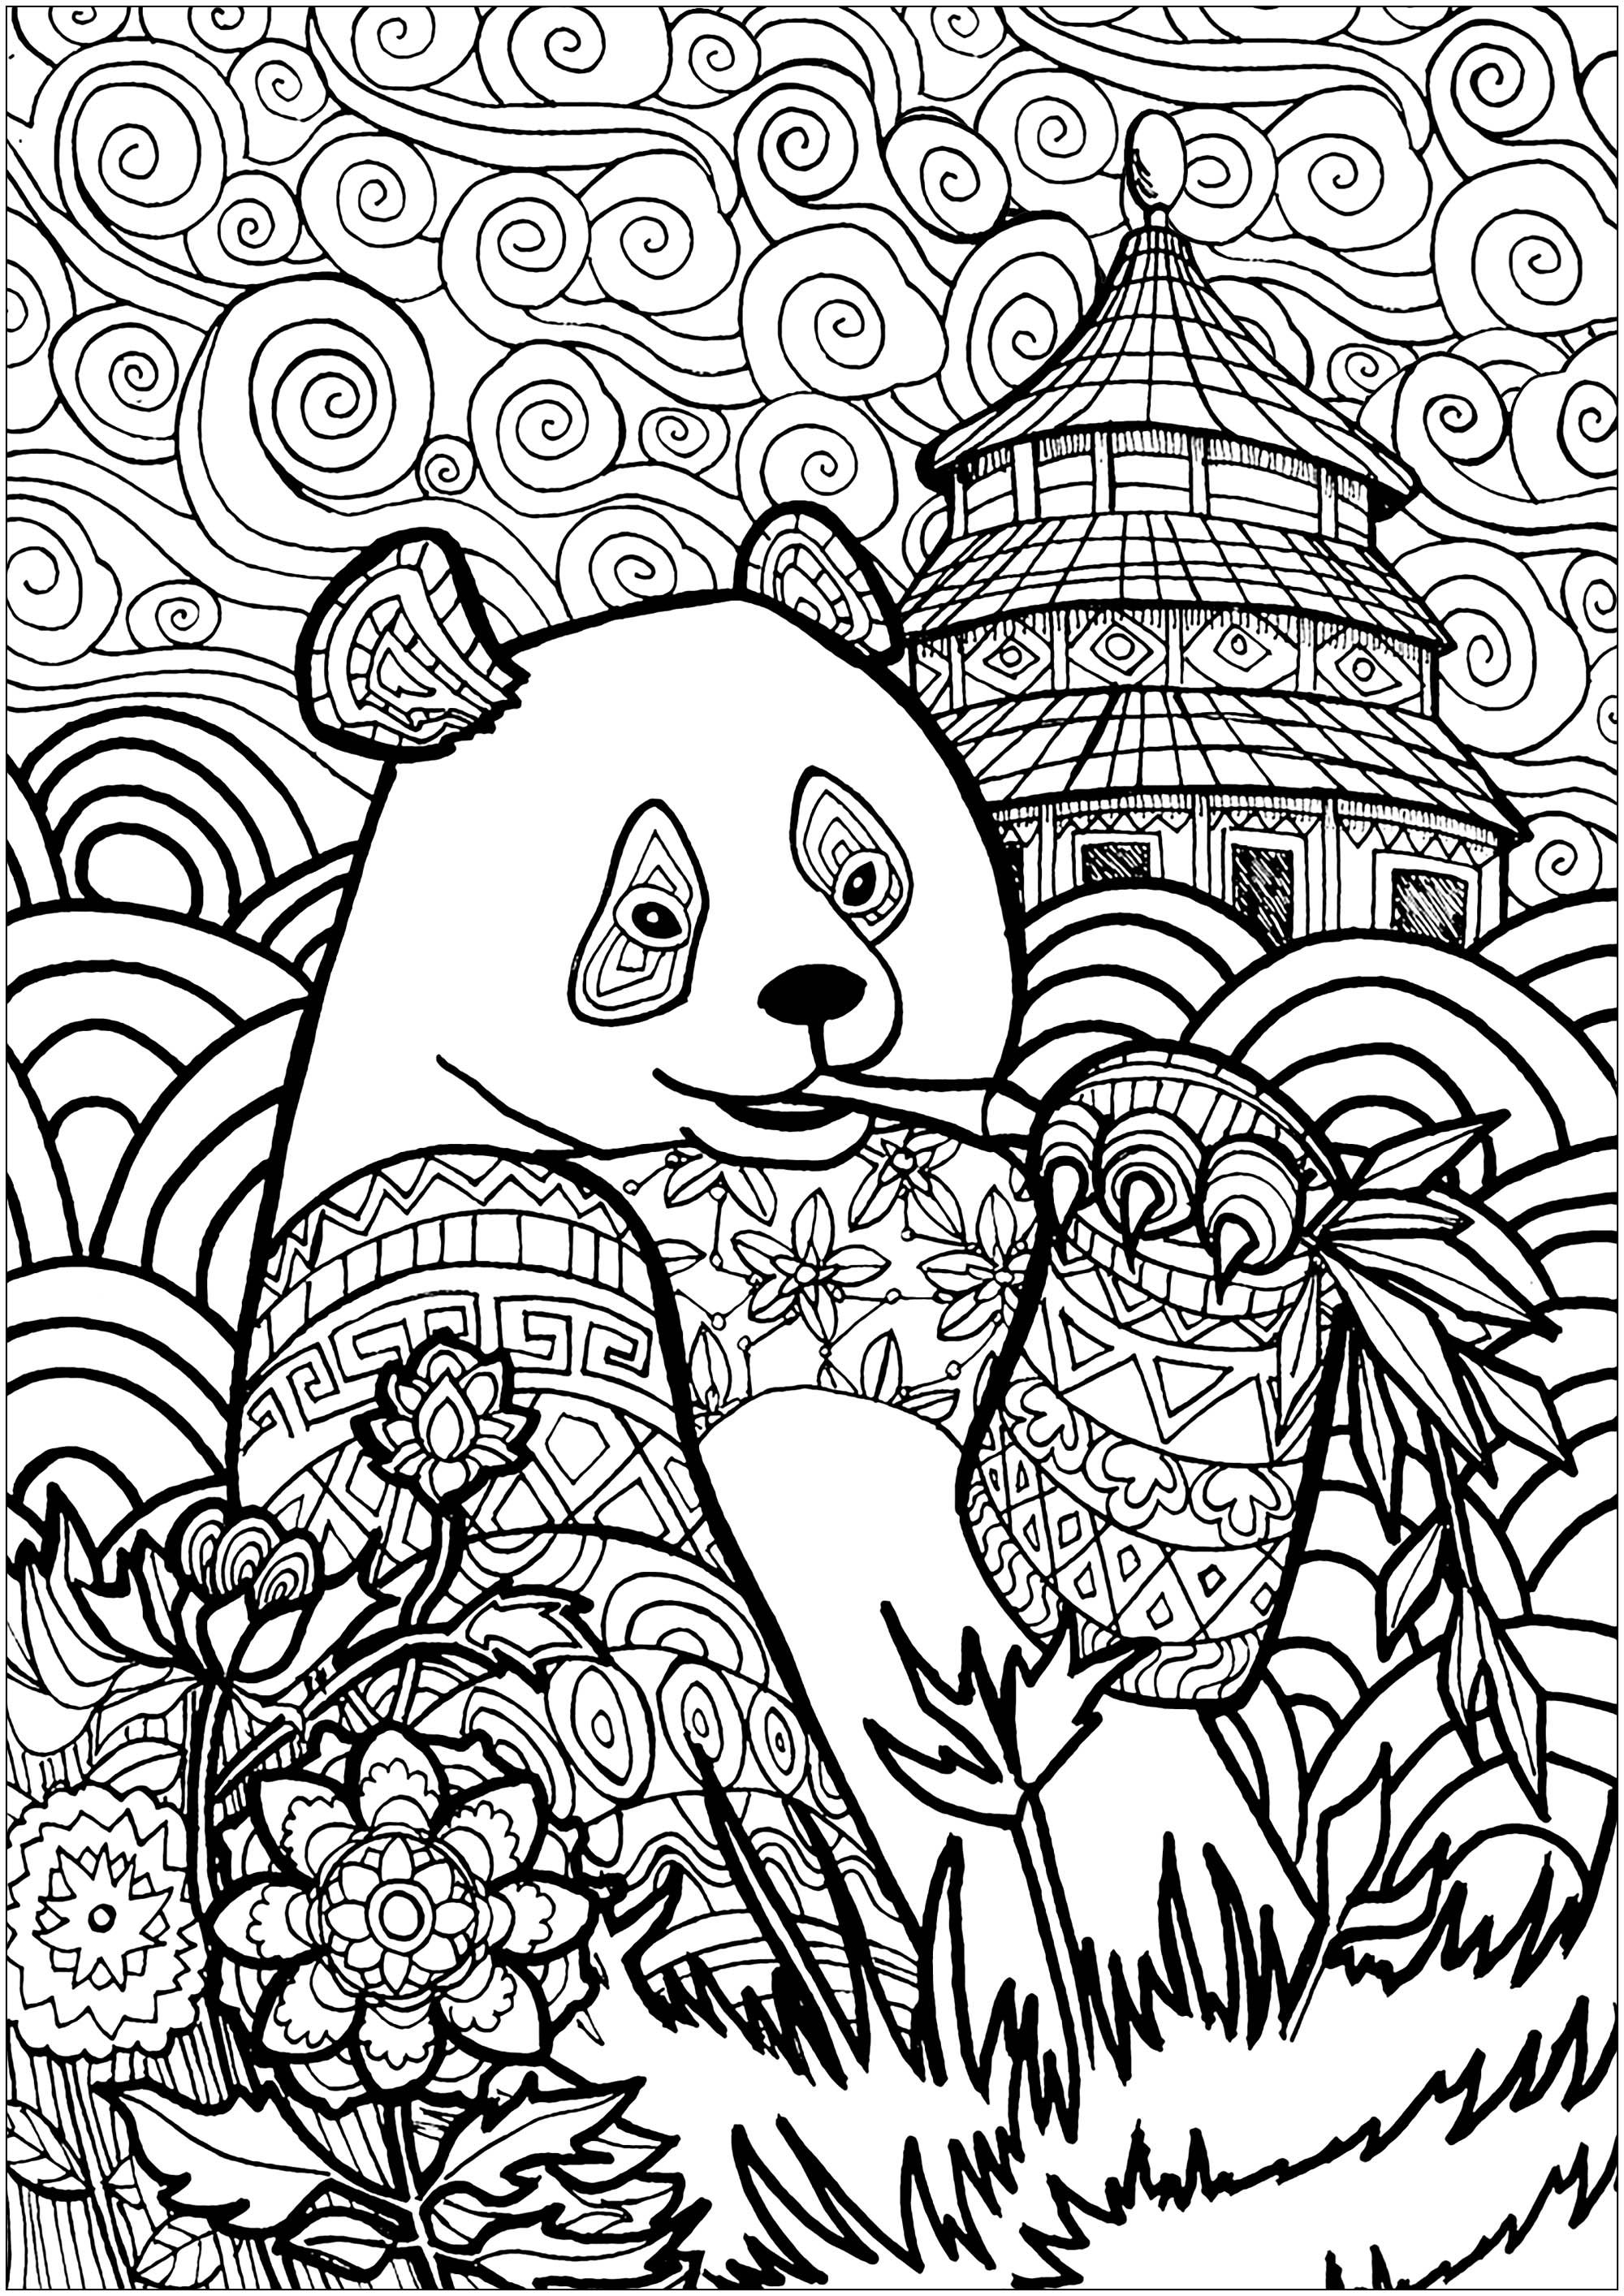 Panda Eating Bamboo With Beautiful Patterns And Abstract Sky From The Gallery Pandas Animal Coloring Pages Mandala Coloring Pages Turtle Coloring Pages